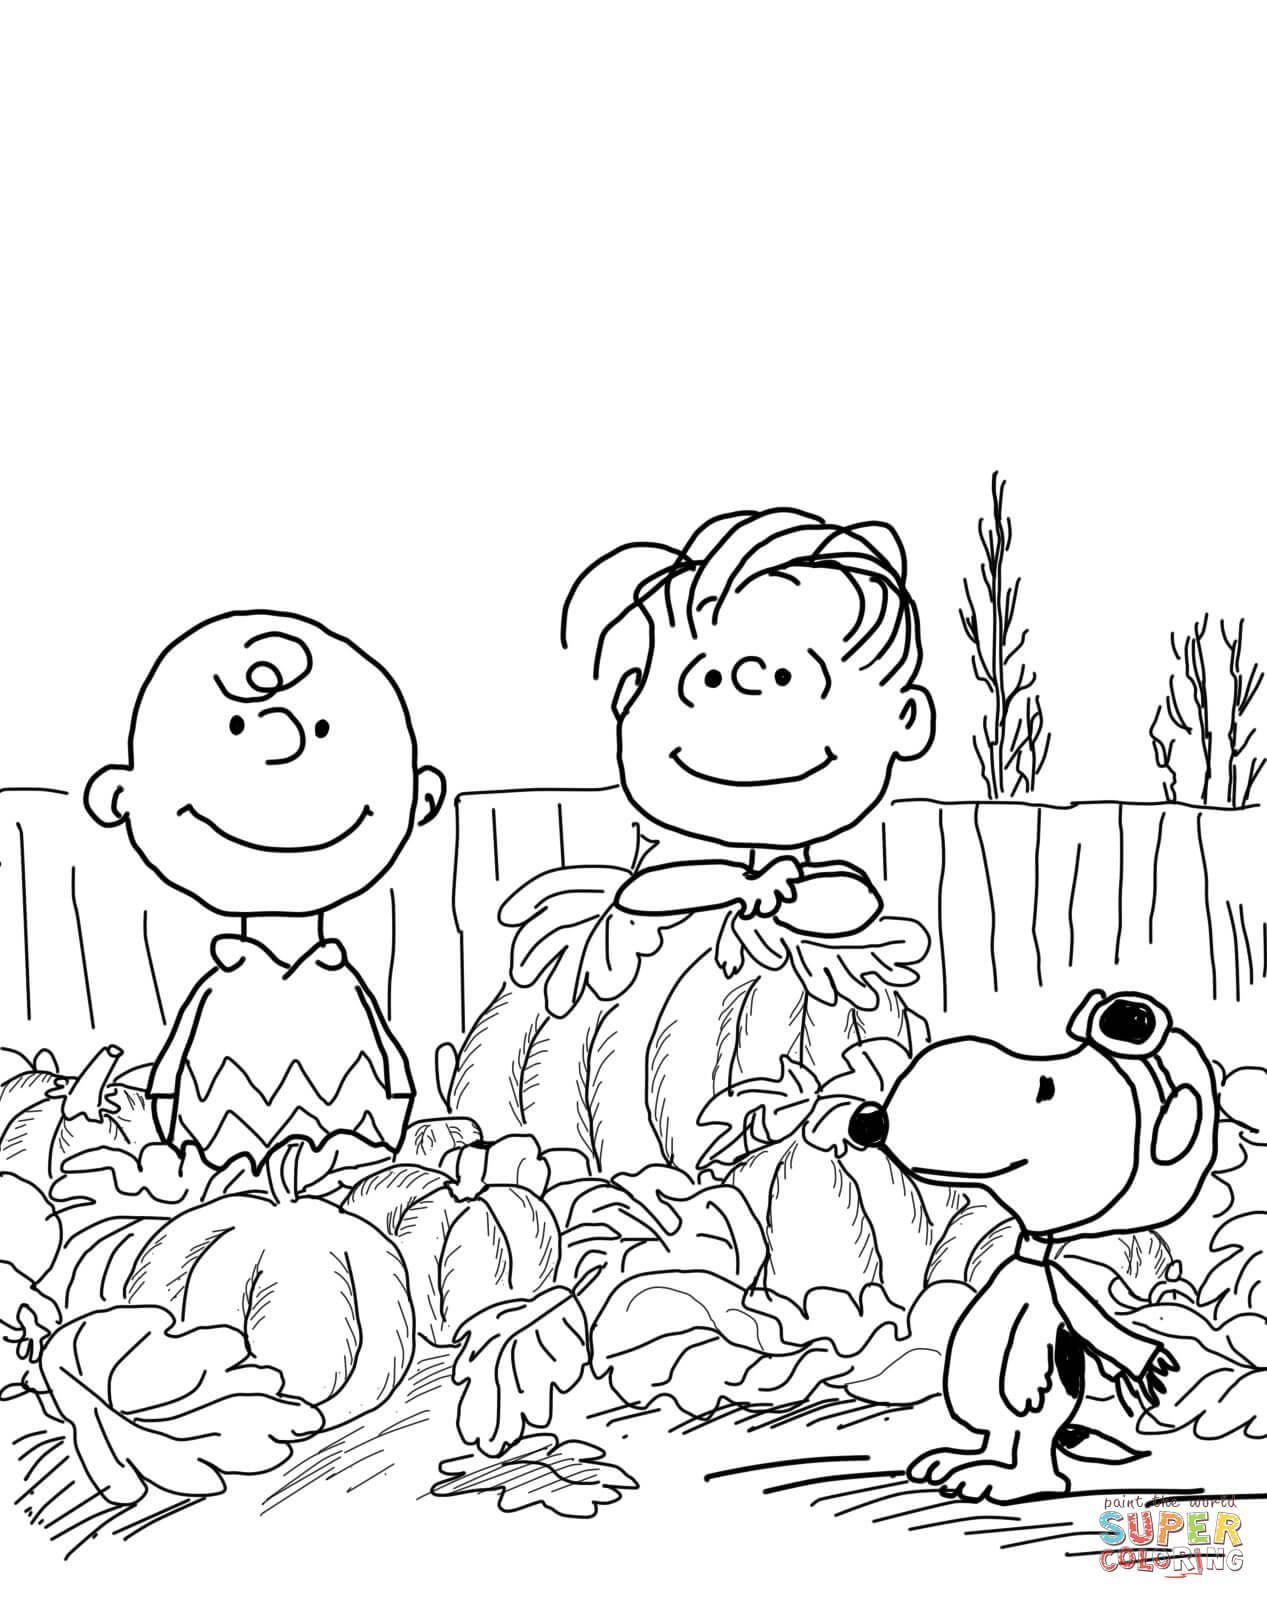 Halloween Coloring Pages Peanuts Gambar